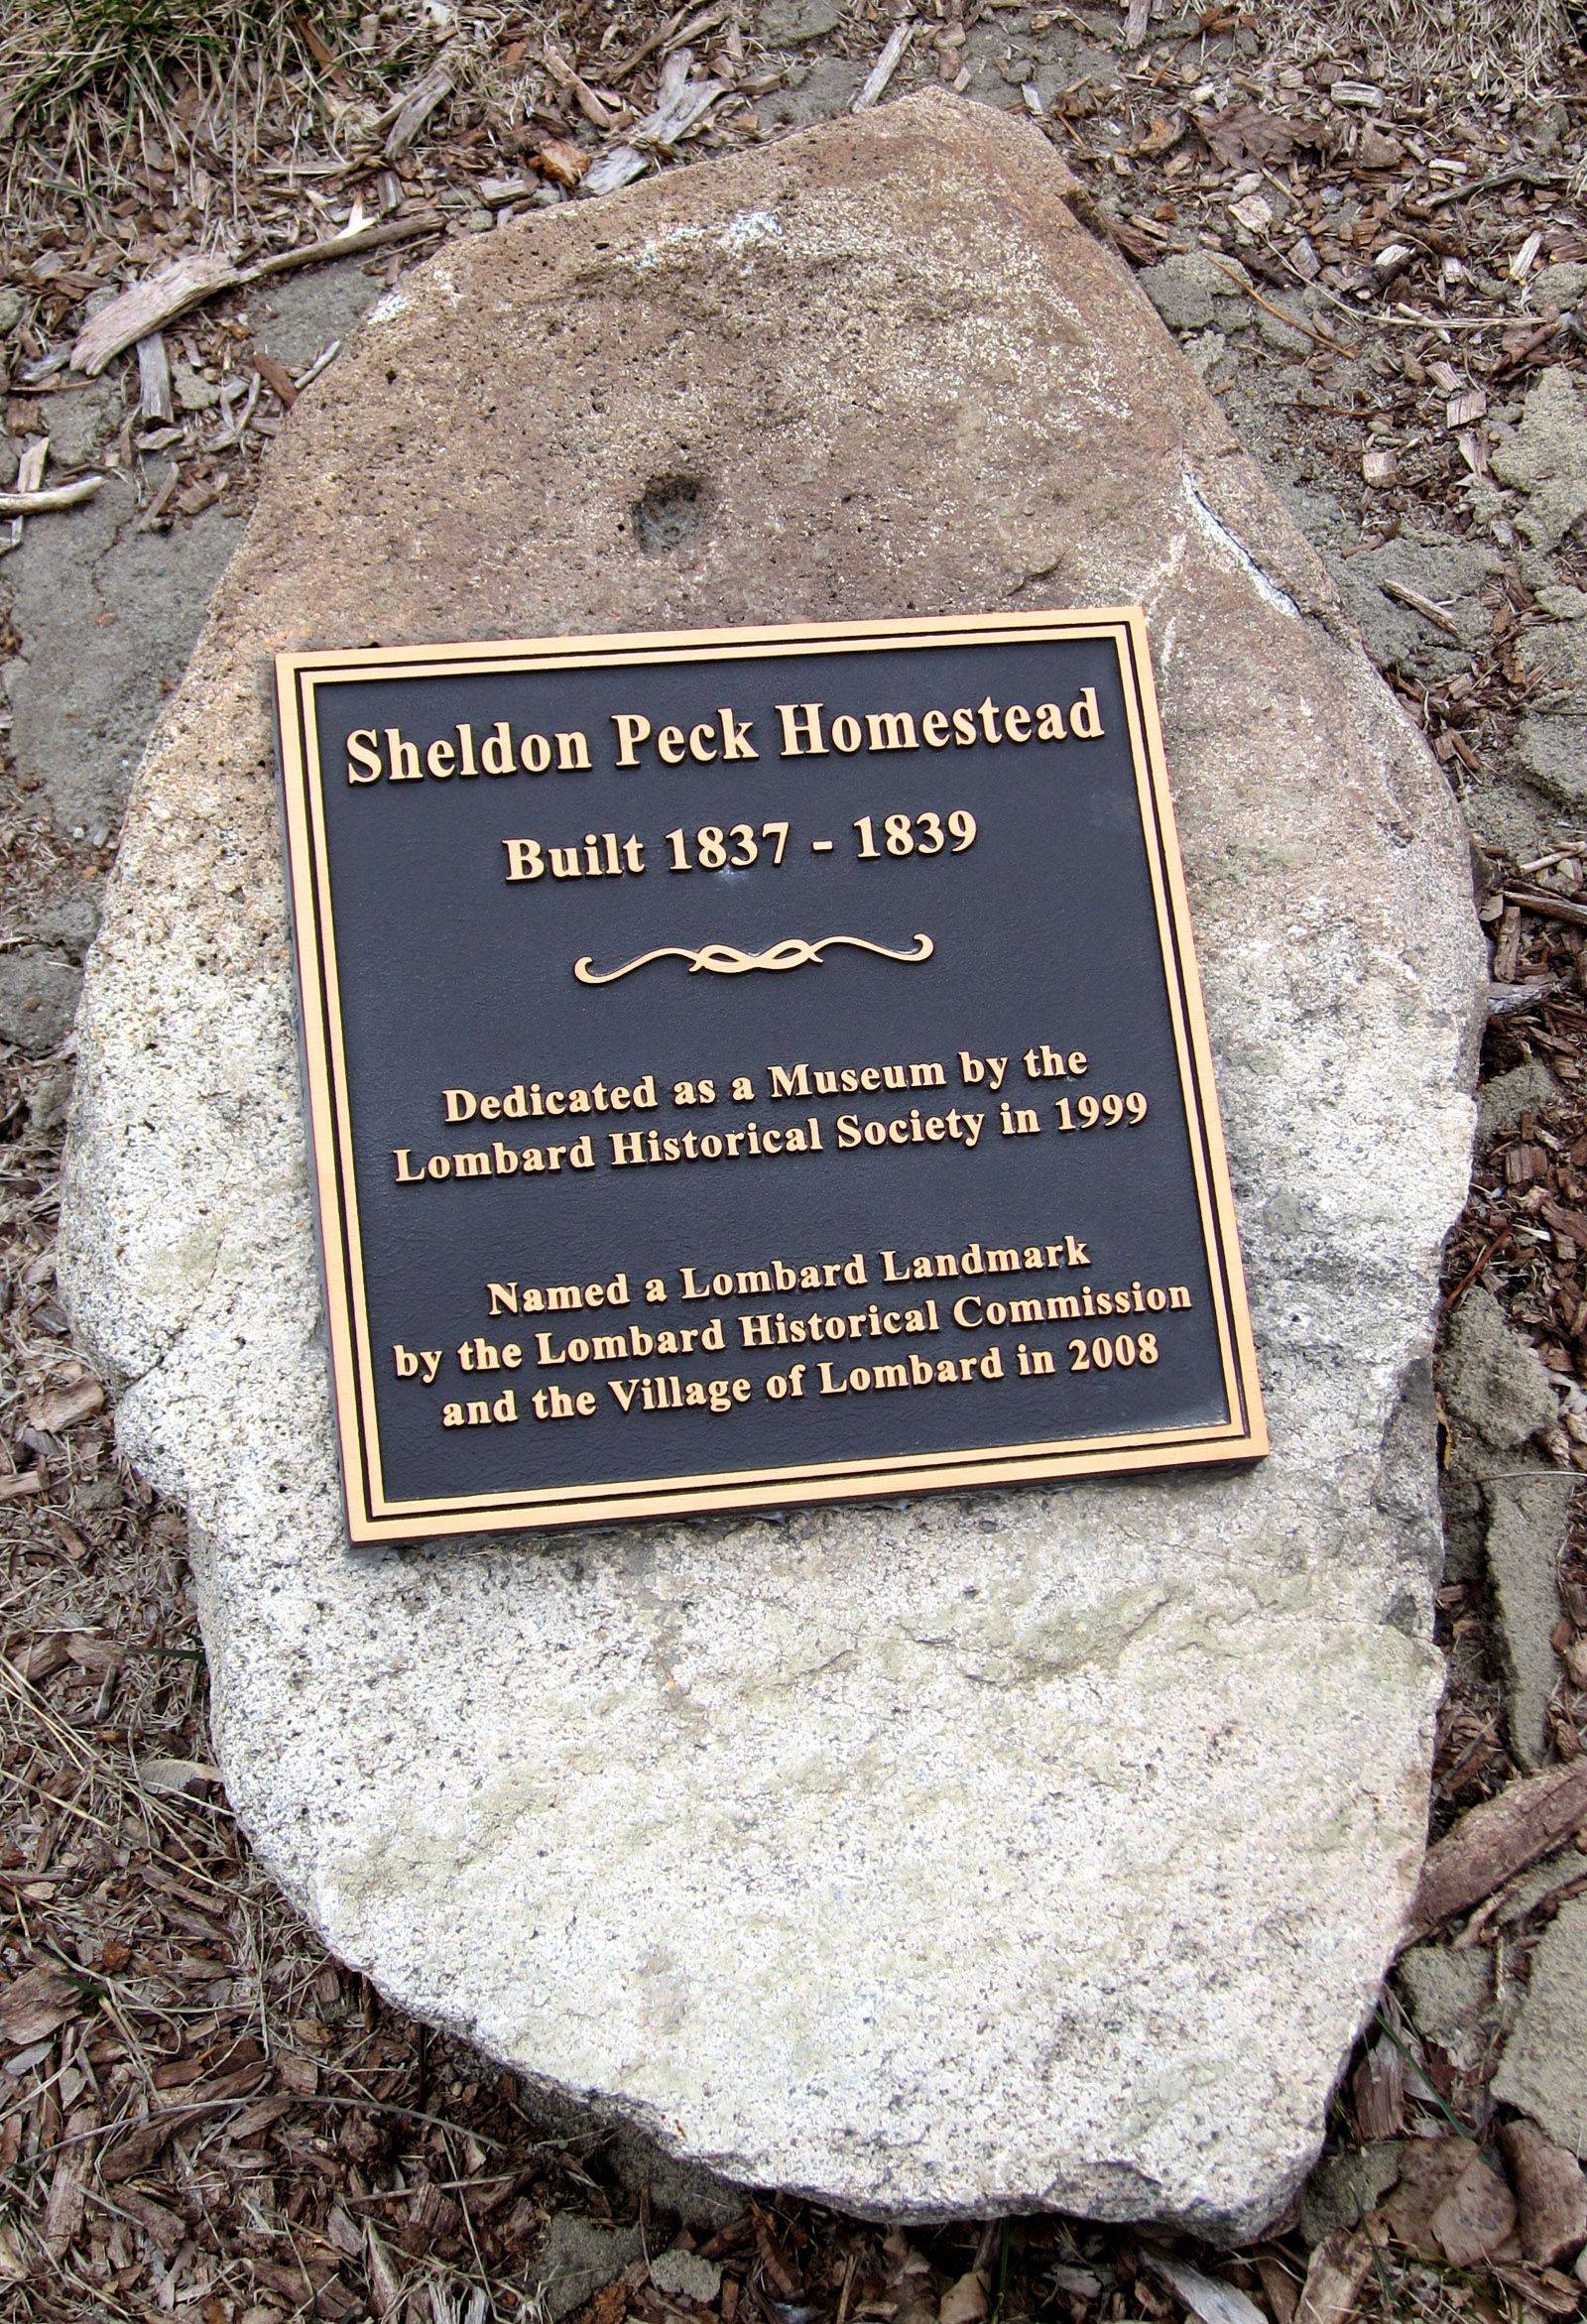 The Sheldon Peck Homestead at 355 E. Parskside Ave. in Lombard has been designated a local landmark since 2008.